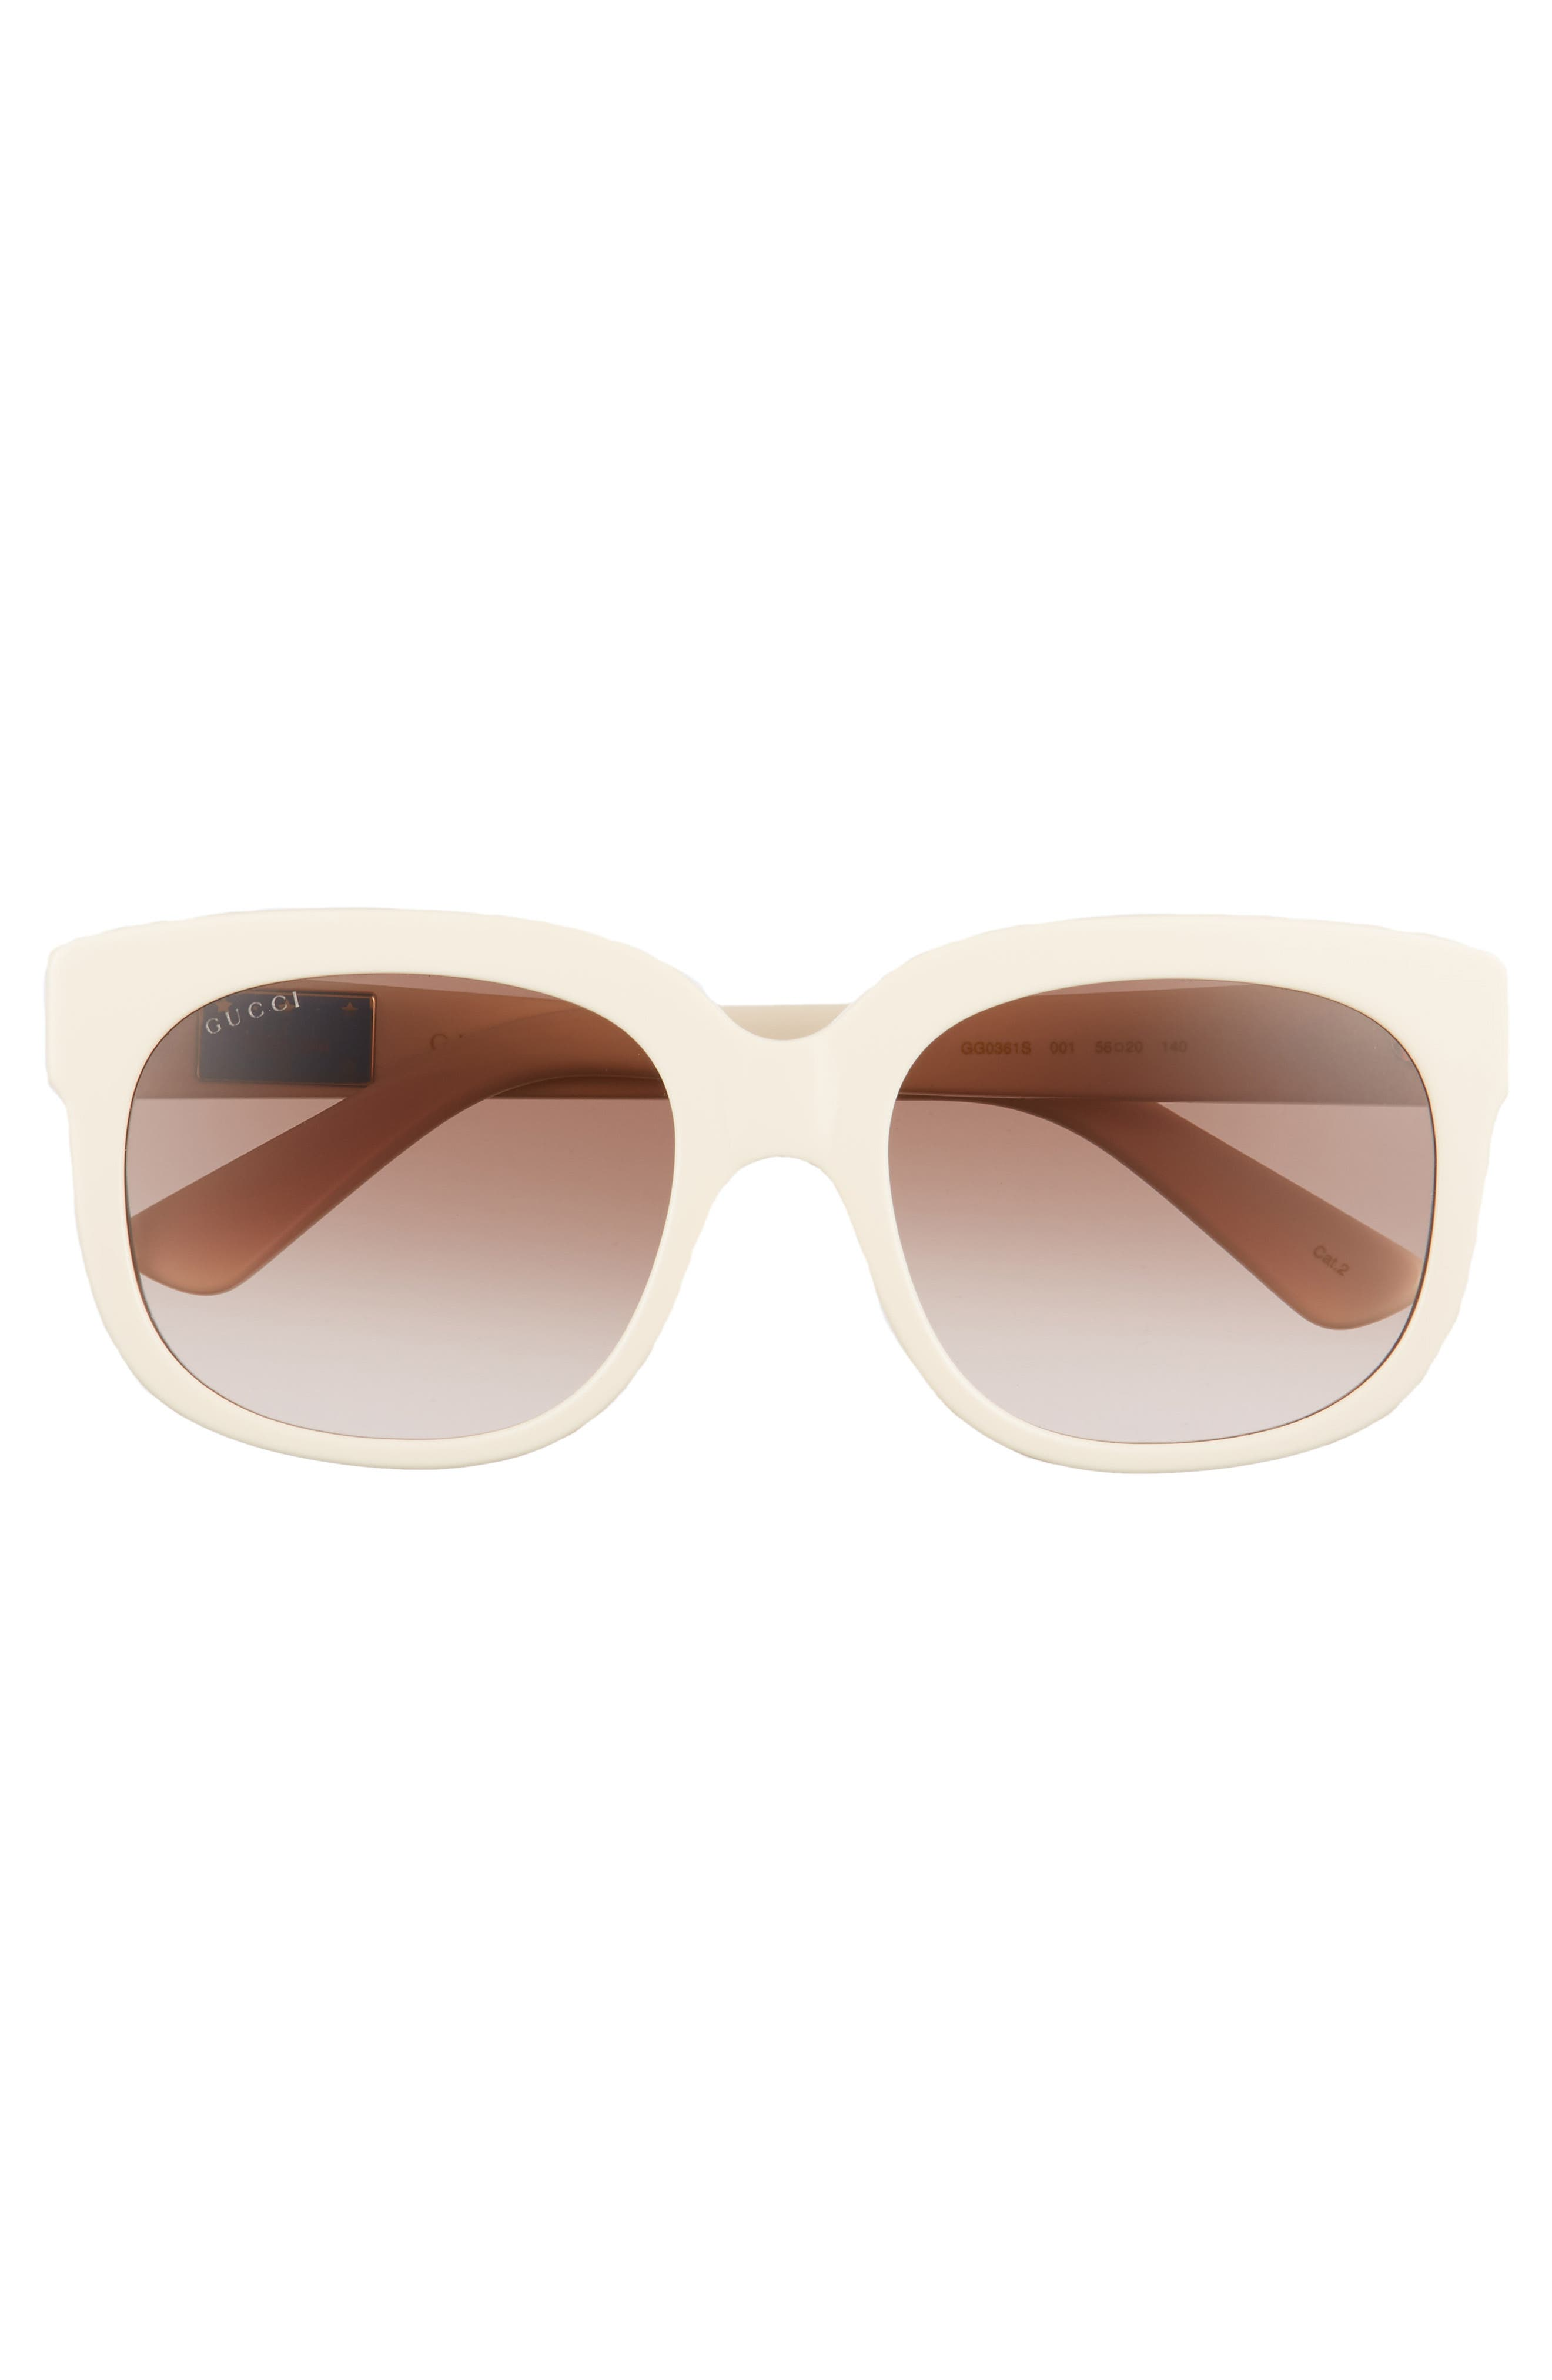 GUCCI, 56mm Gradient Cat Eye Sunglasses, Alternate thumbnail 3, color, IVORY/ BROWN/ PINK